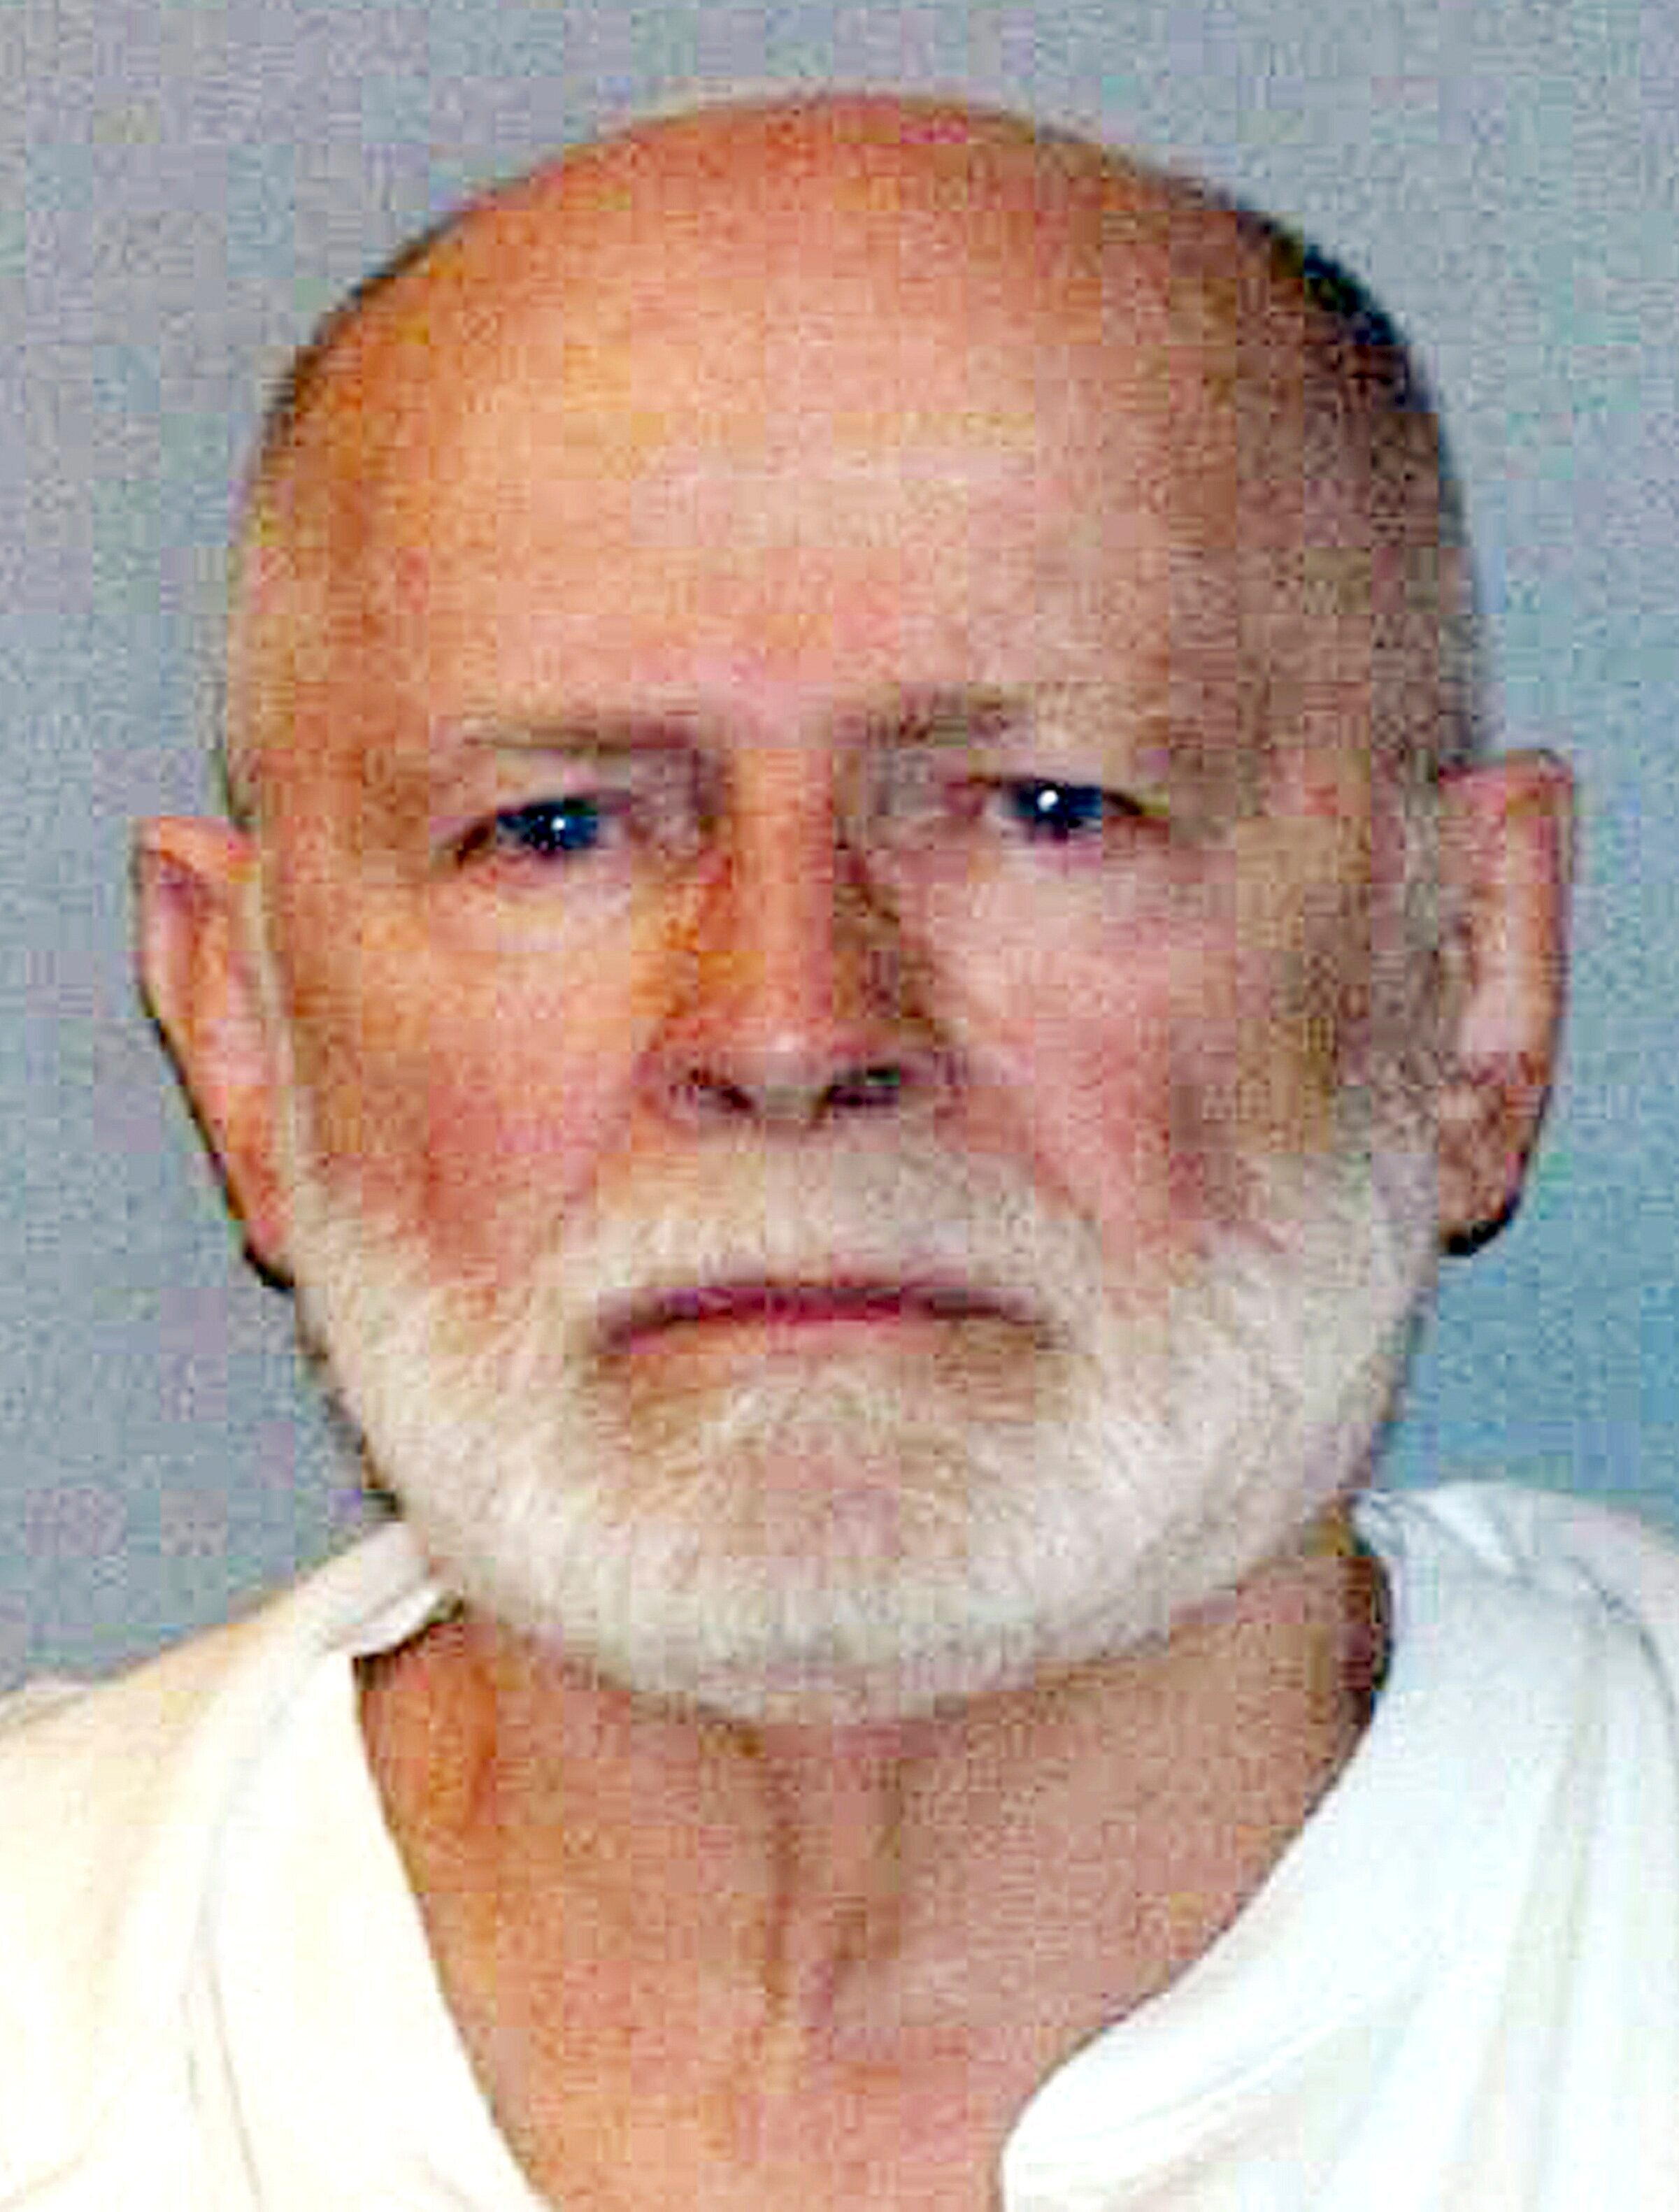 Whitey Bulger's Death Certificate Confirms How He Spent His Final Moments